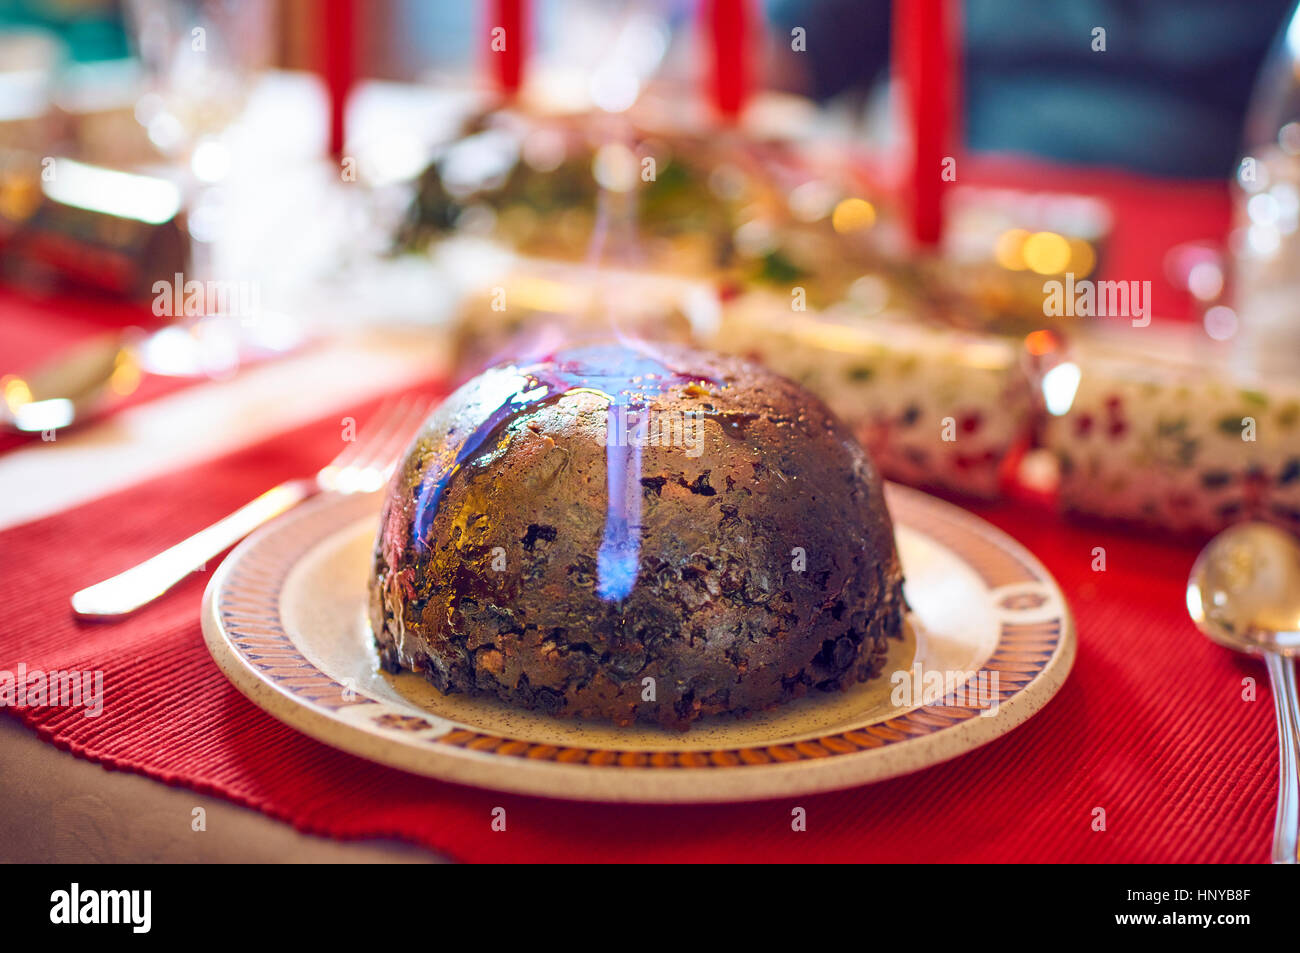 Christmas pudding flaming with brandy - Stock Image